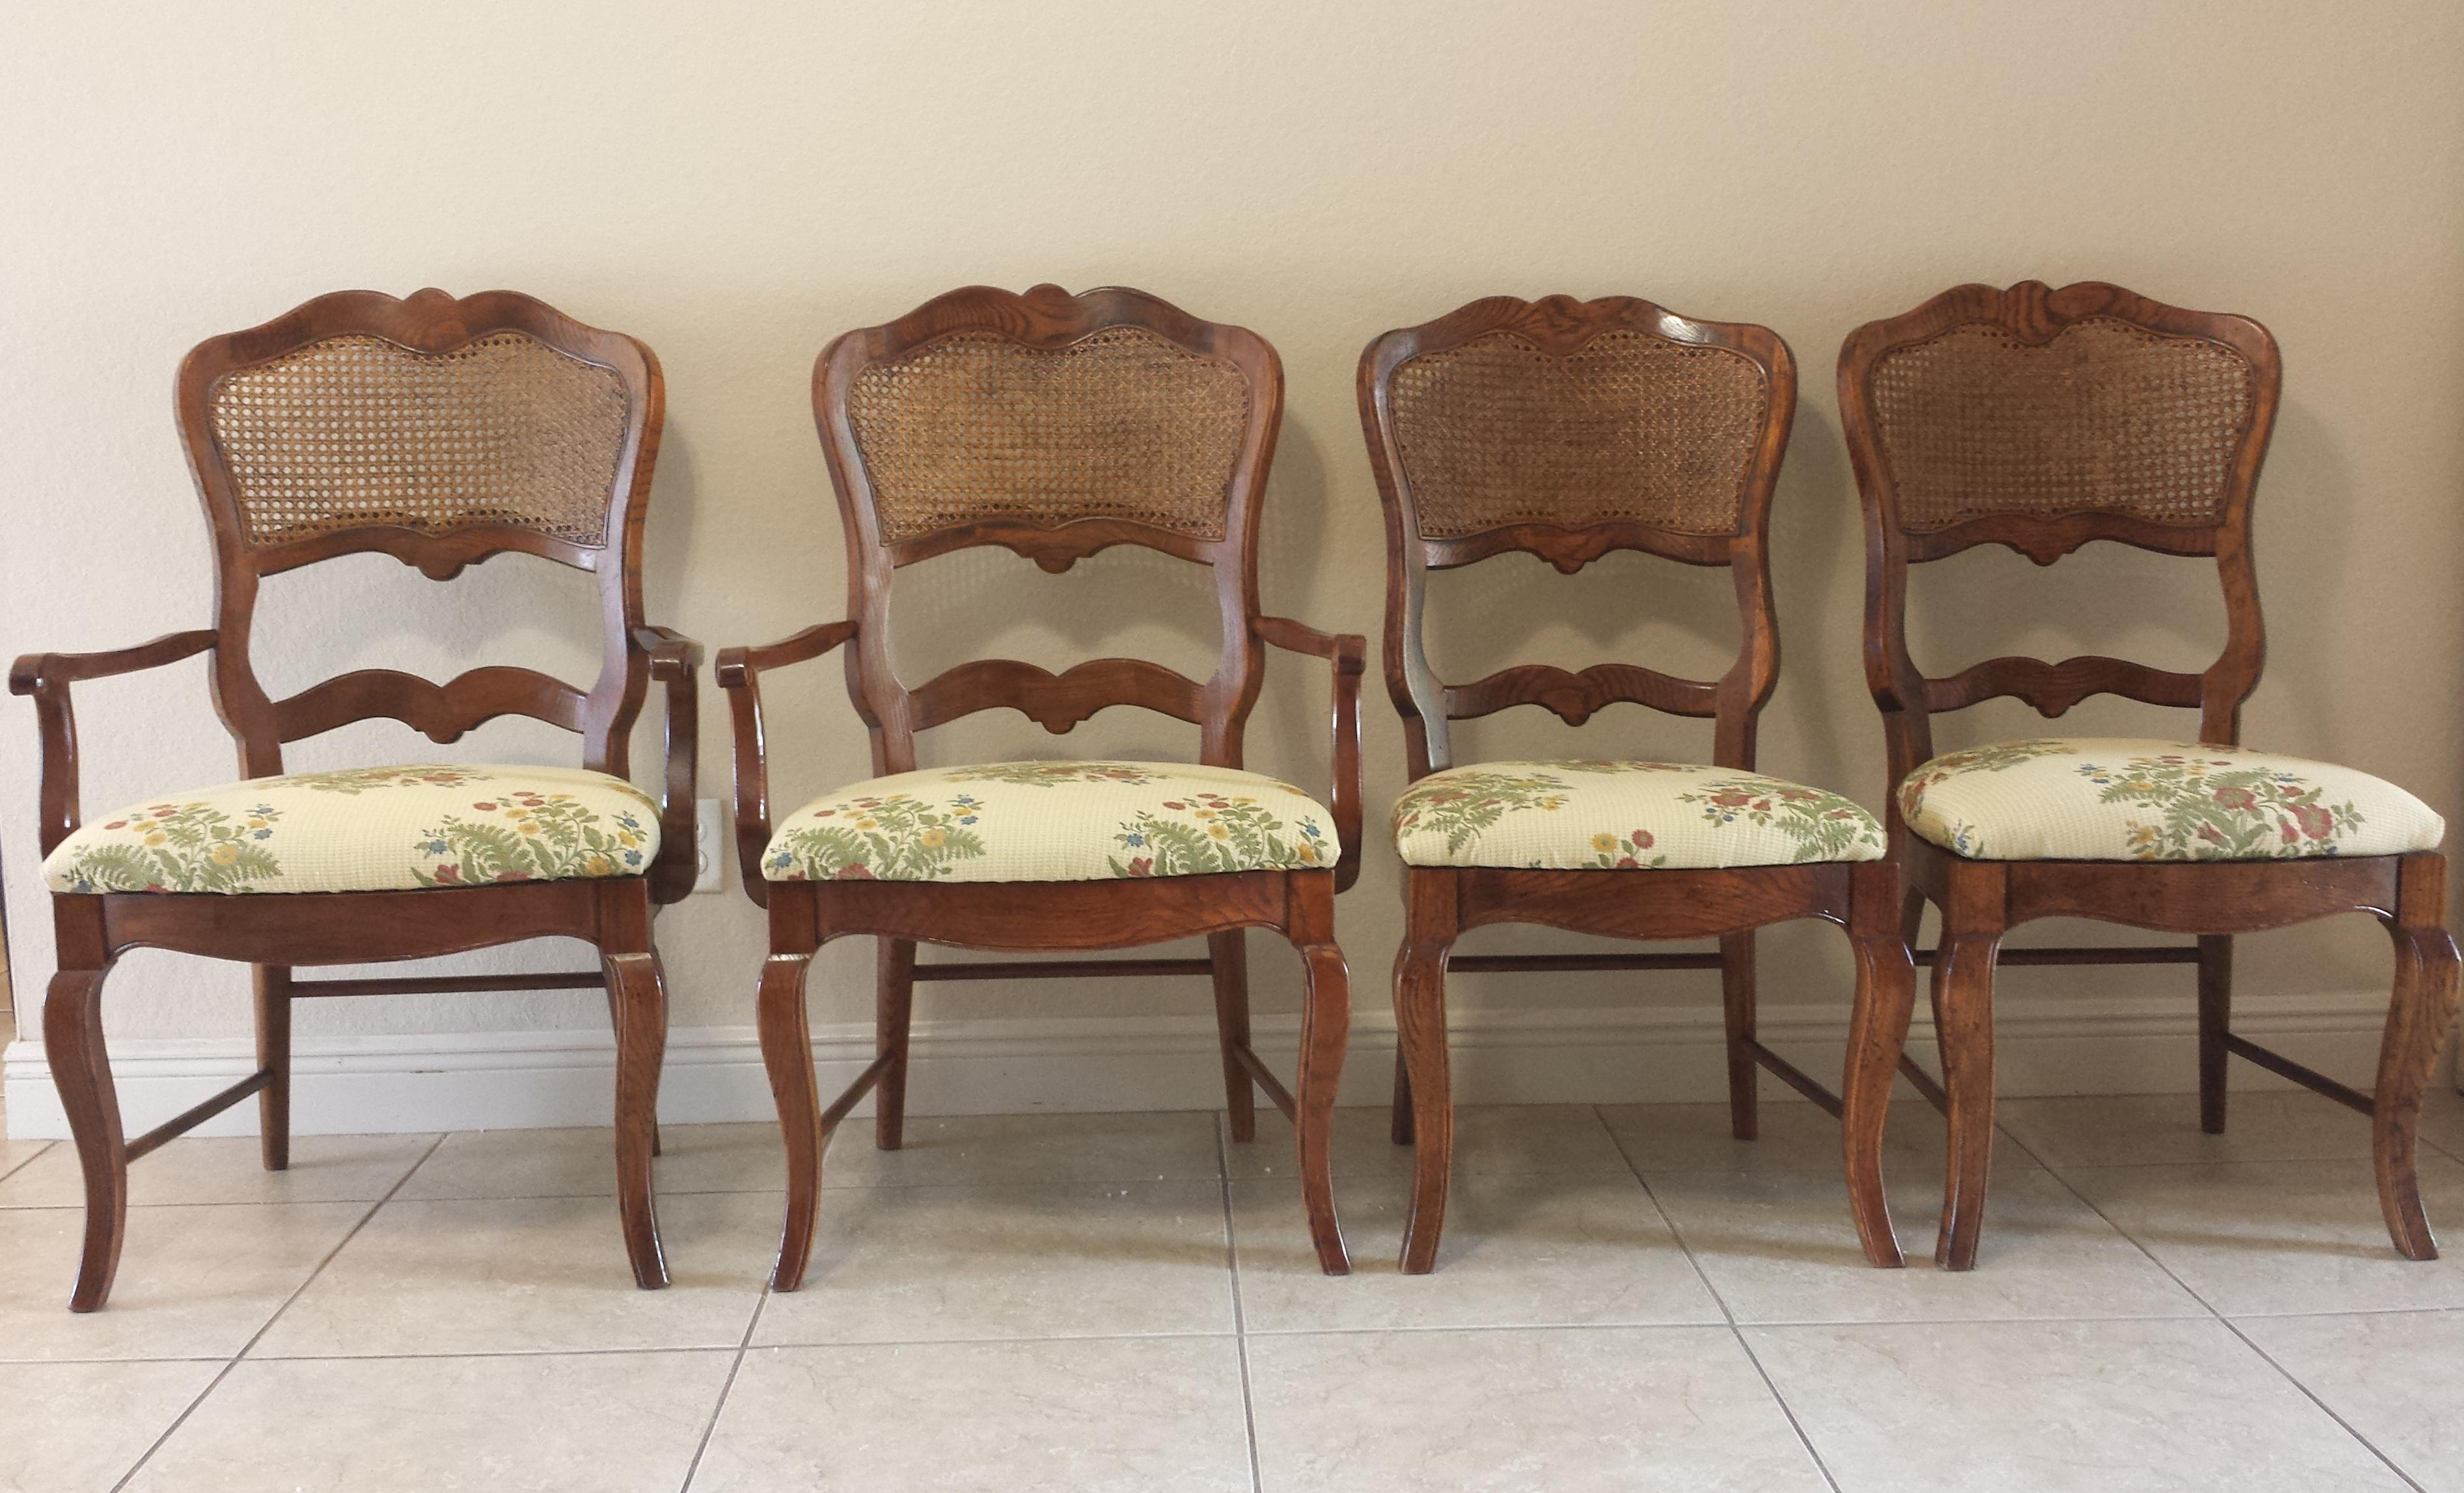 French Cane Chair century french country cane back dining chairs- set of 4 | chairish